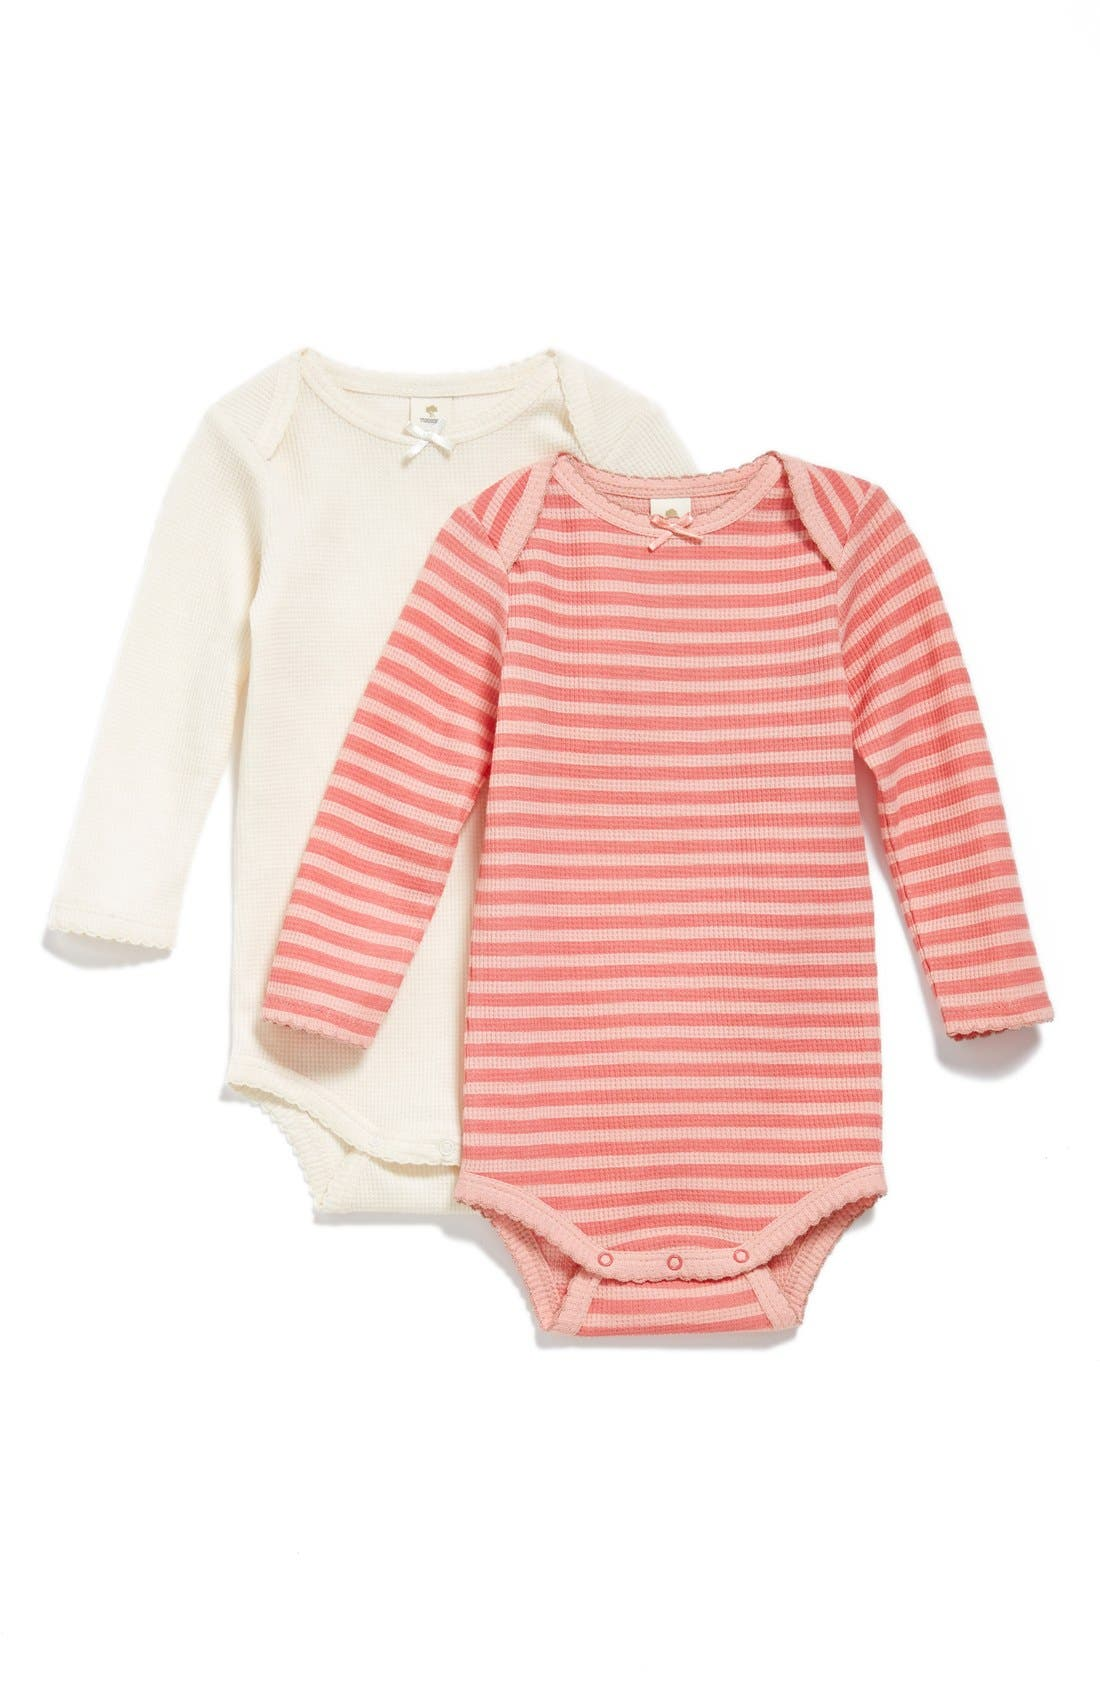 Alternate Image 1 Selected - Tucker + Tate Scallop Trim Waffle Weave Bodysuit (2-Pack) (Baby Girls)